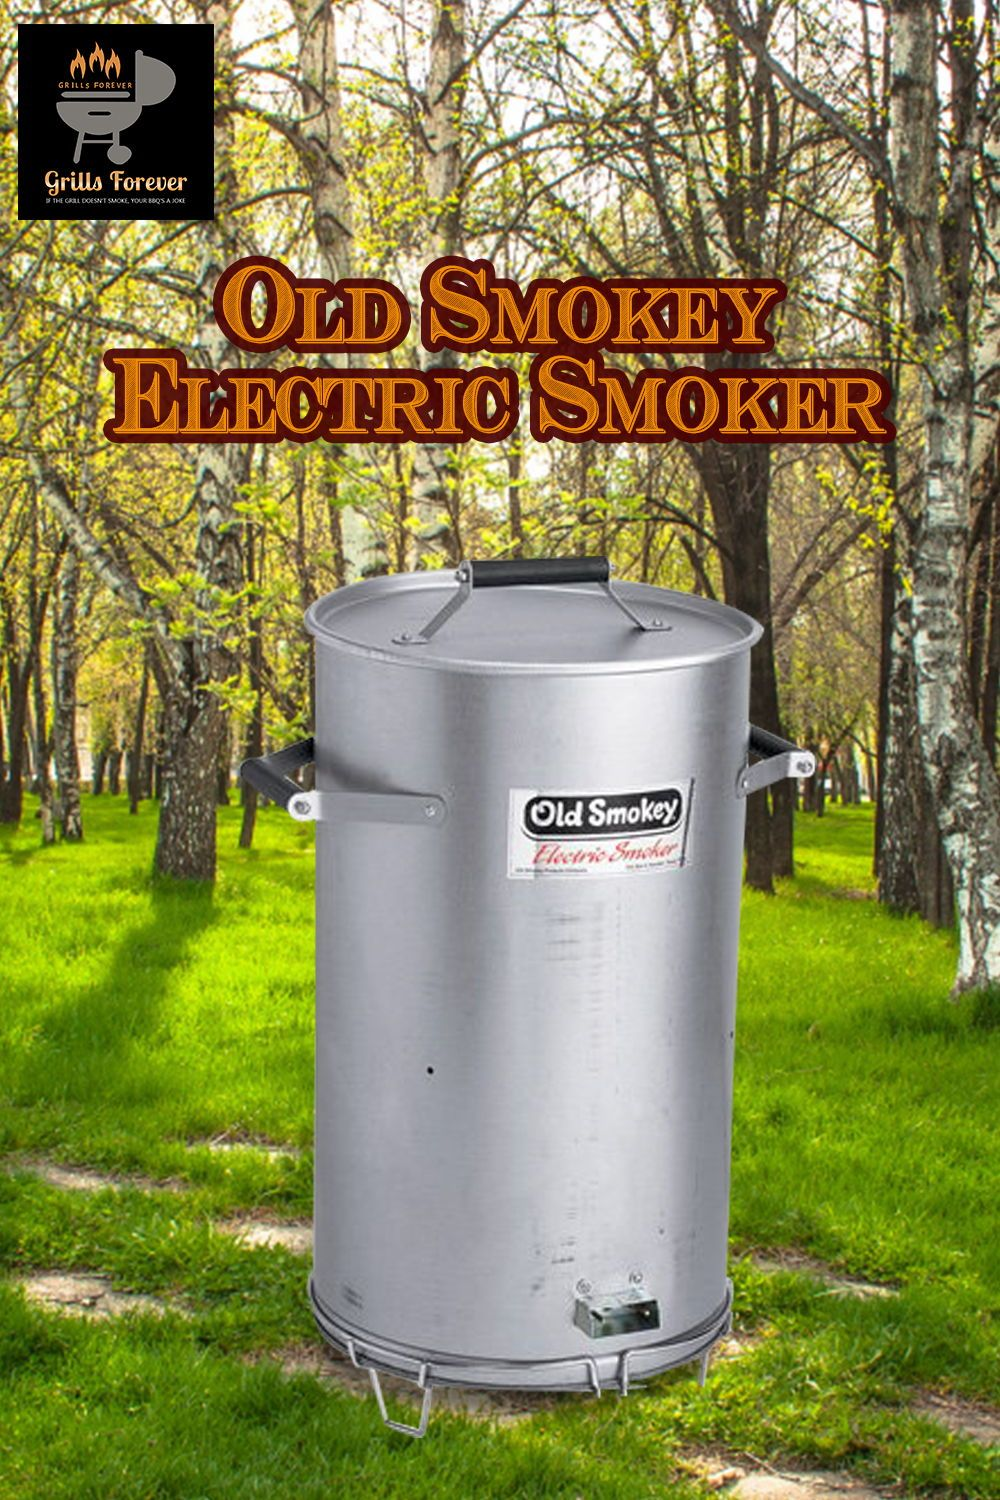 Best Electric Smokers 2019 Top 10 Electric Smokers (May 2019): Reviews & Buyers Guide in 2019